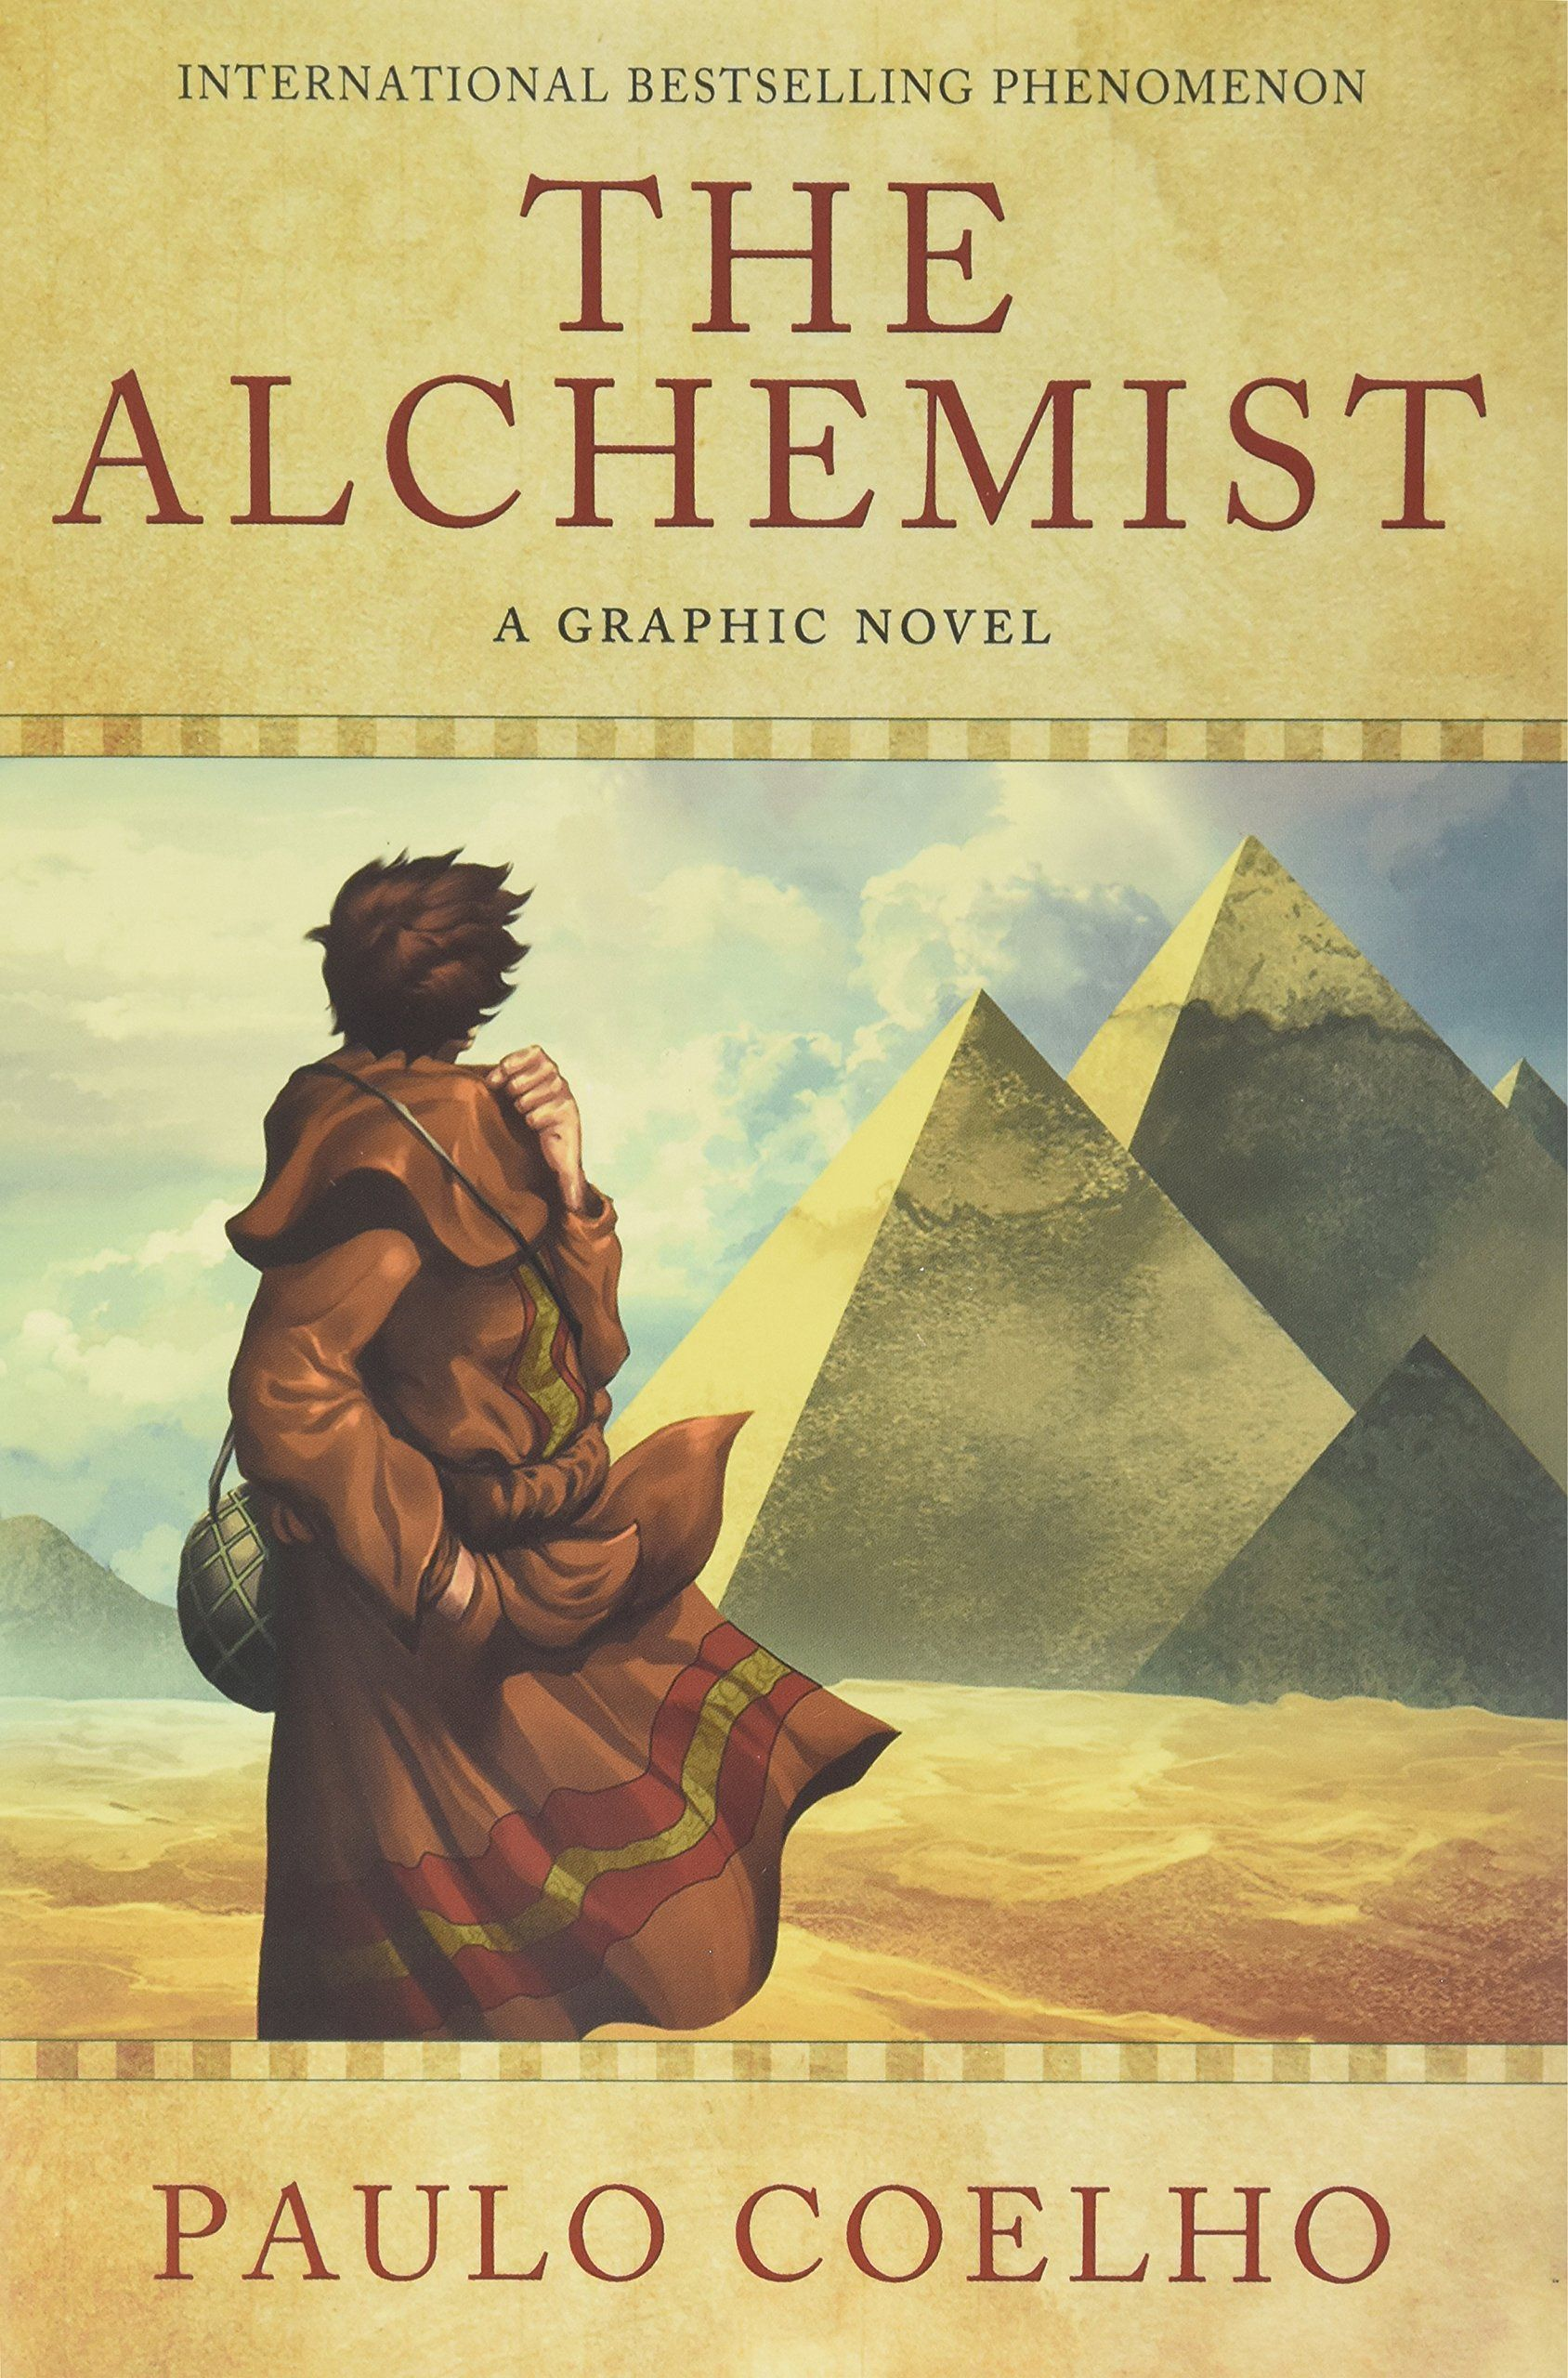 The Alchemist (Portuguese O Alquimista) is a novel by